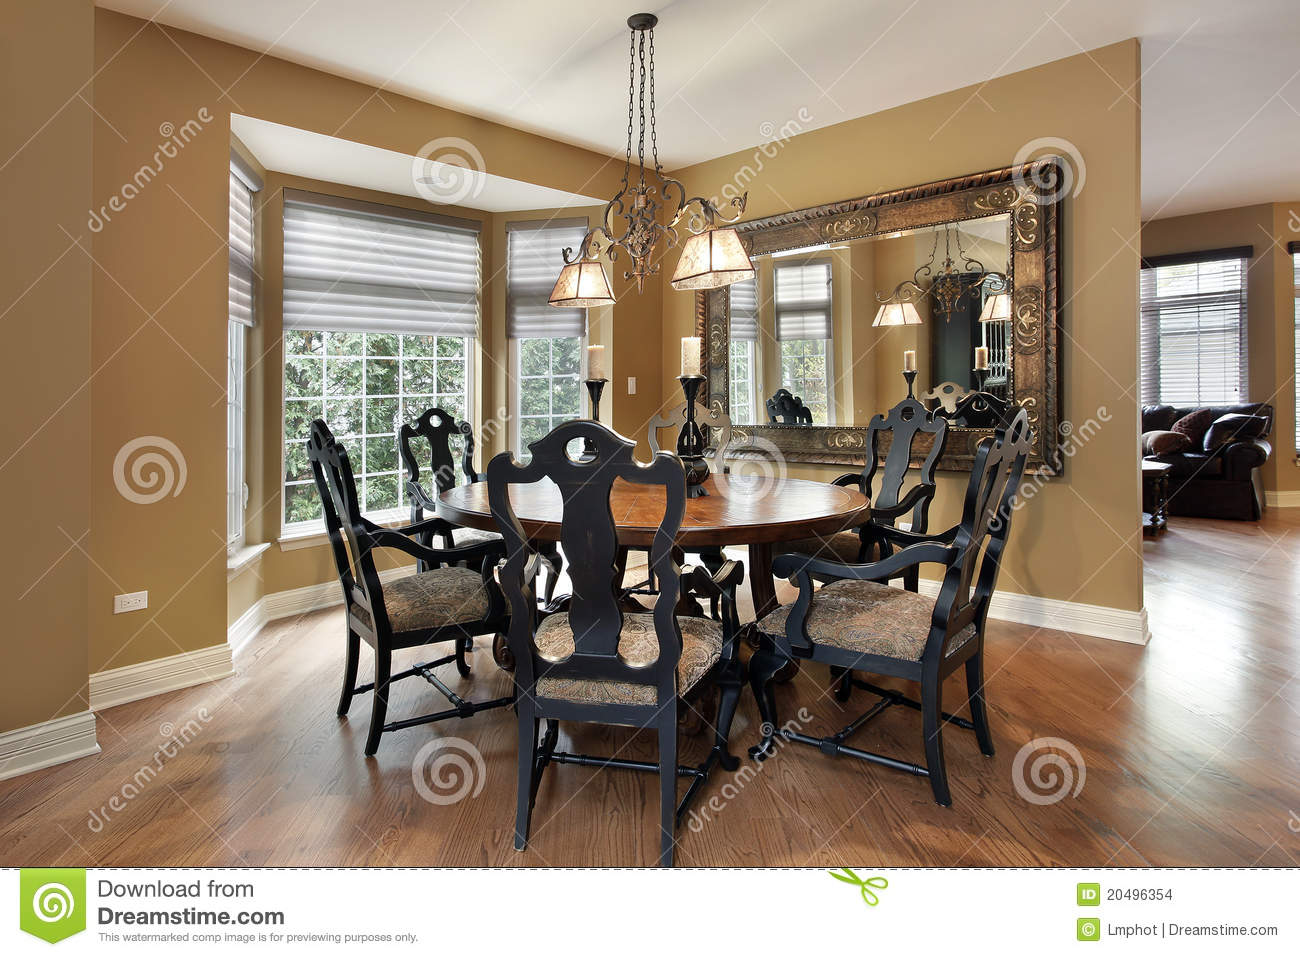 Dining Room With Gold Walls Stock Images  Image 20496354